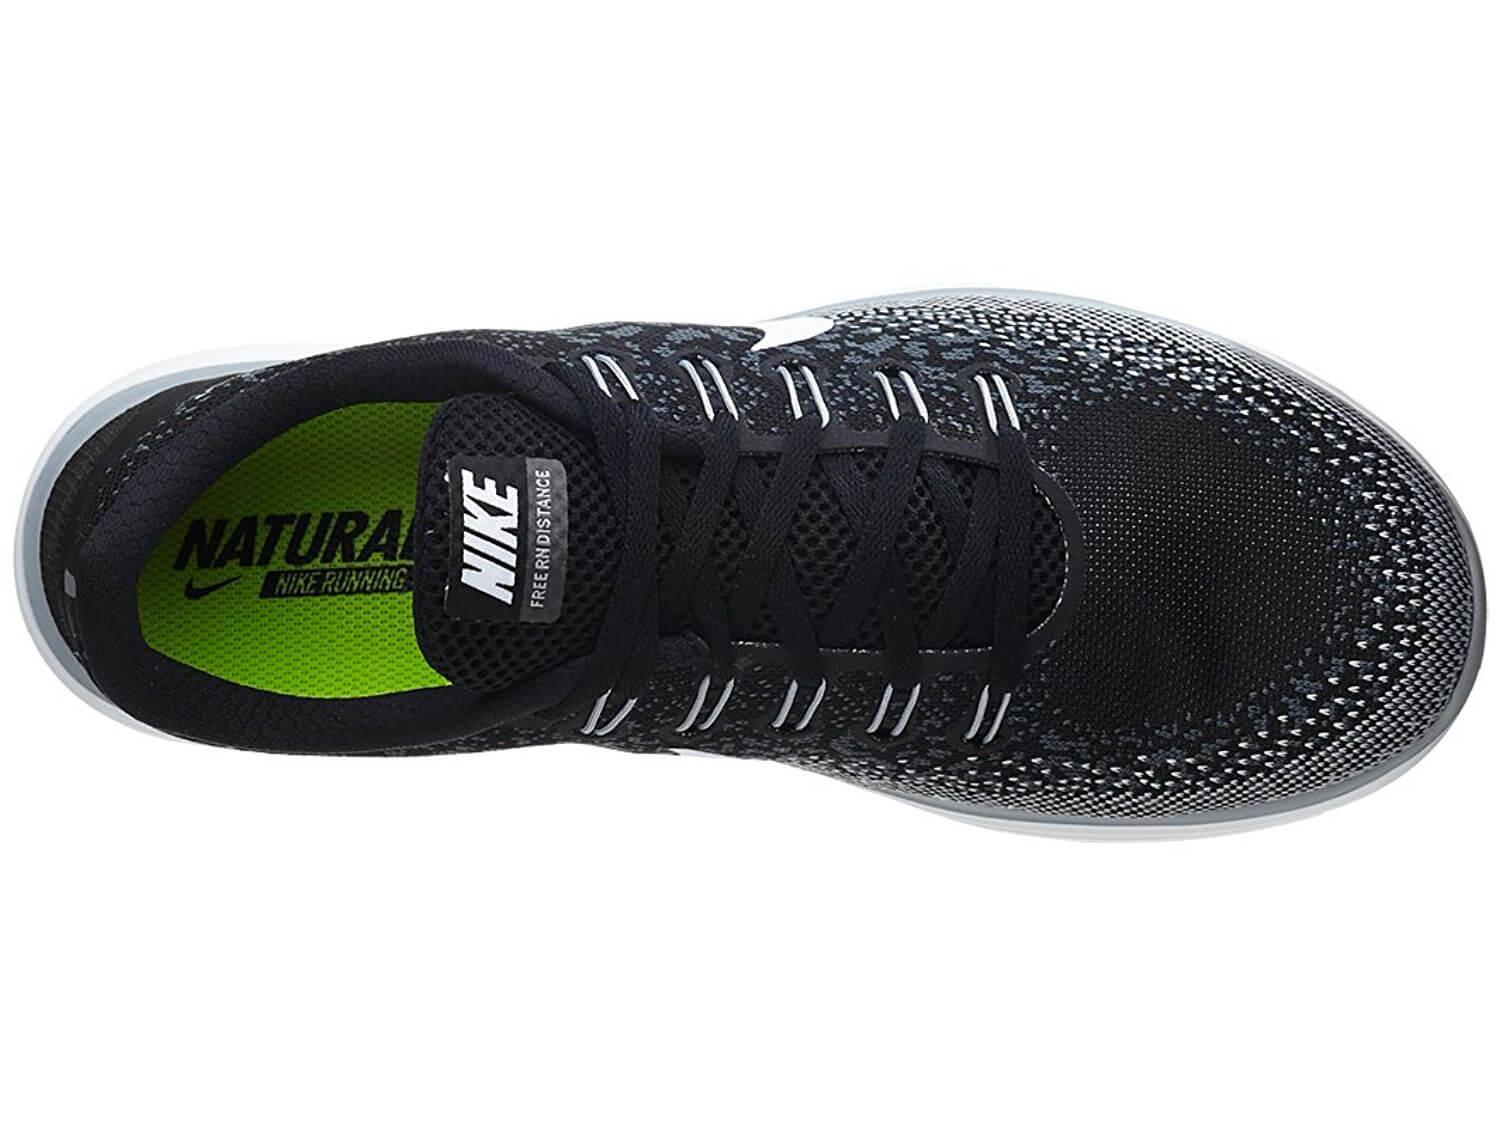 8c803740b9d A single-layer knit upper on the Nike Free RN Distance helps to keep  weight  BRS 1000 carbon rubber was used to design the durable outsole ...